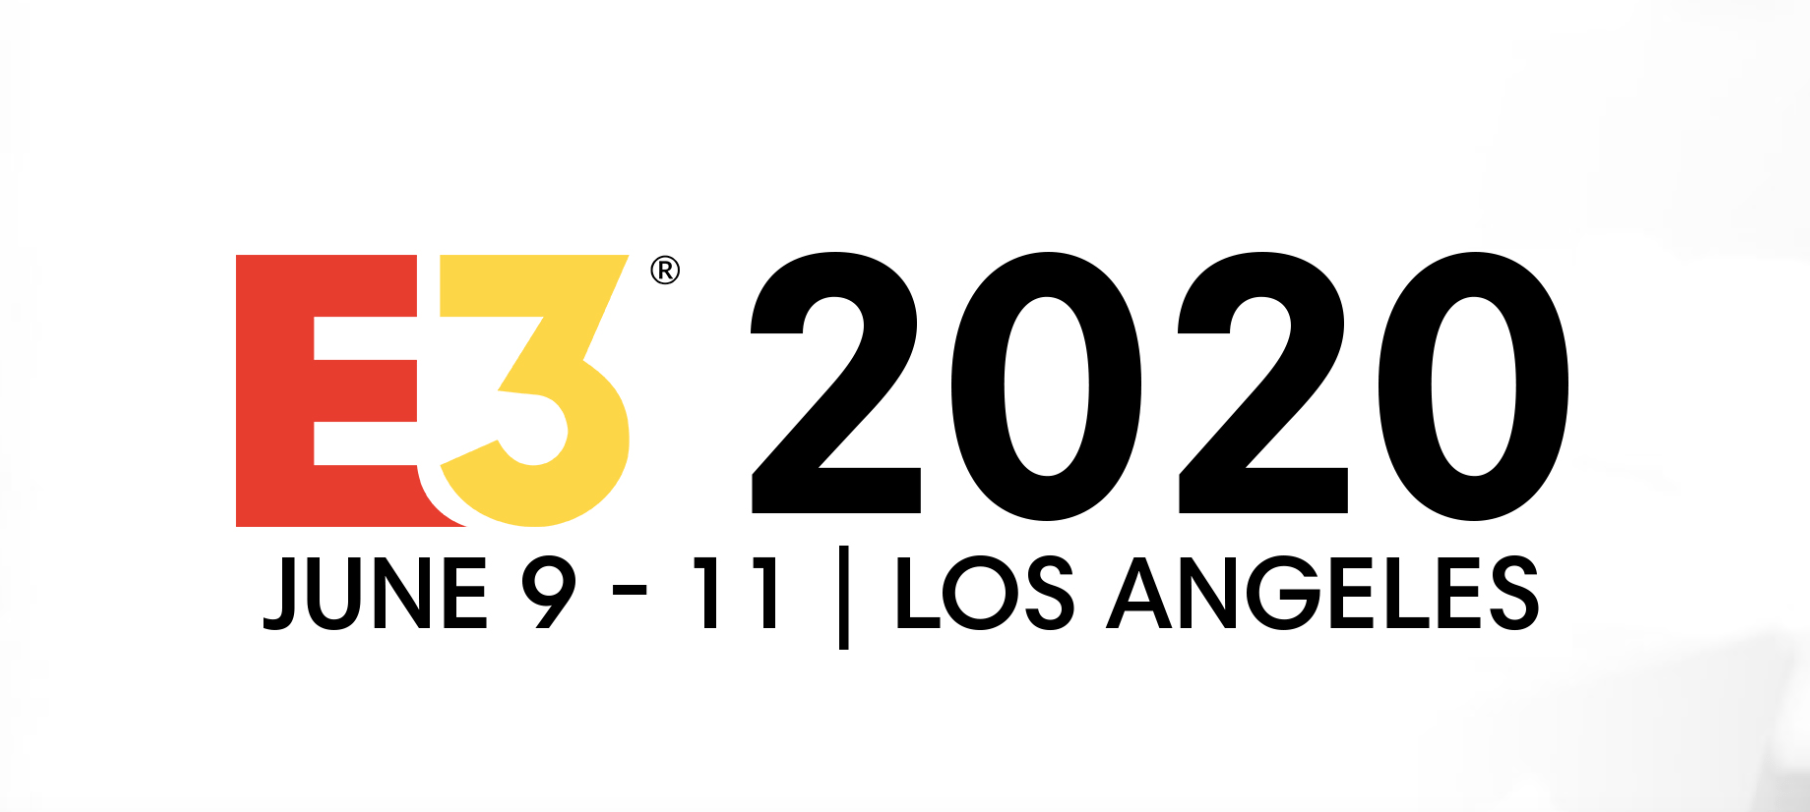 Multiple Outlets Reporting Cancellation Of E3 2020, Official Announcement To Follow Soon